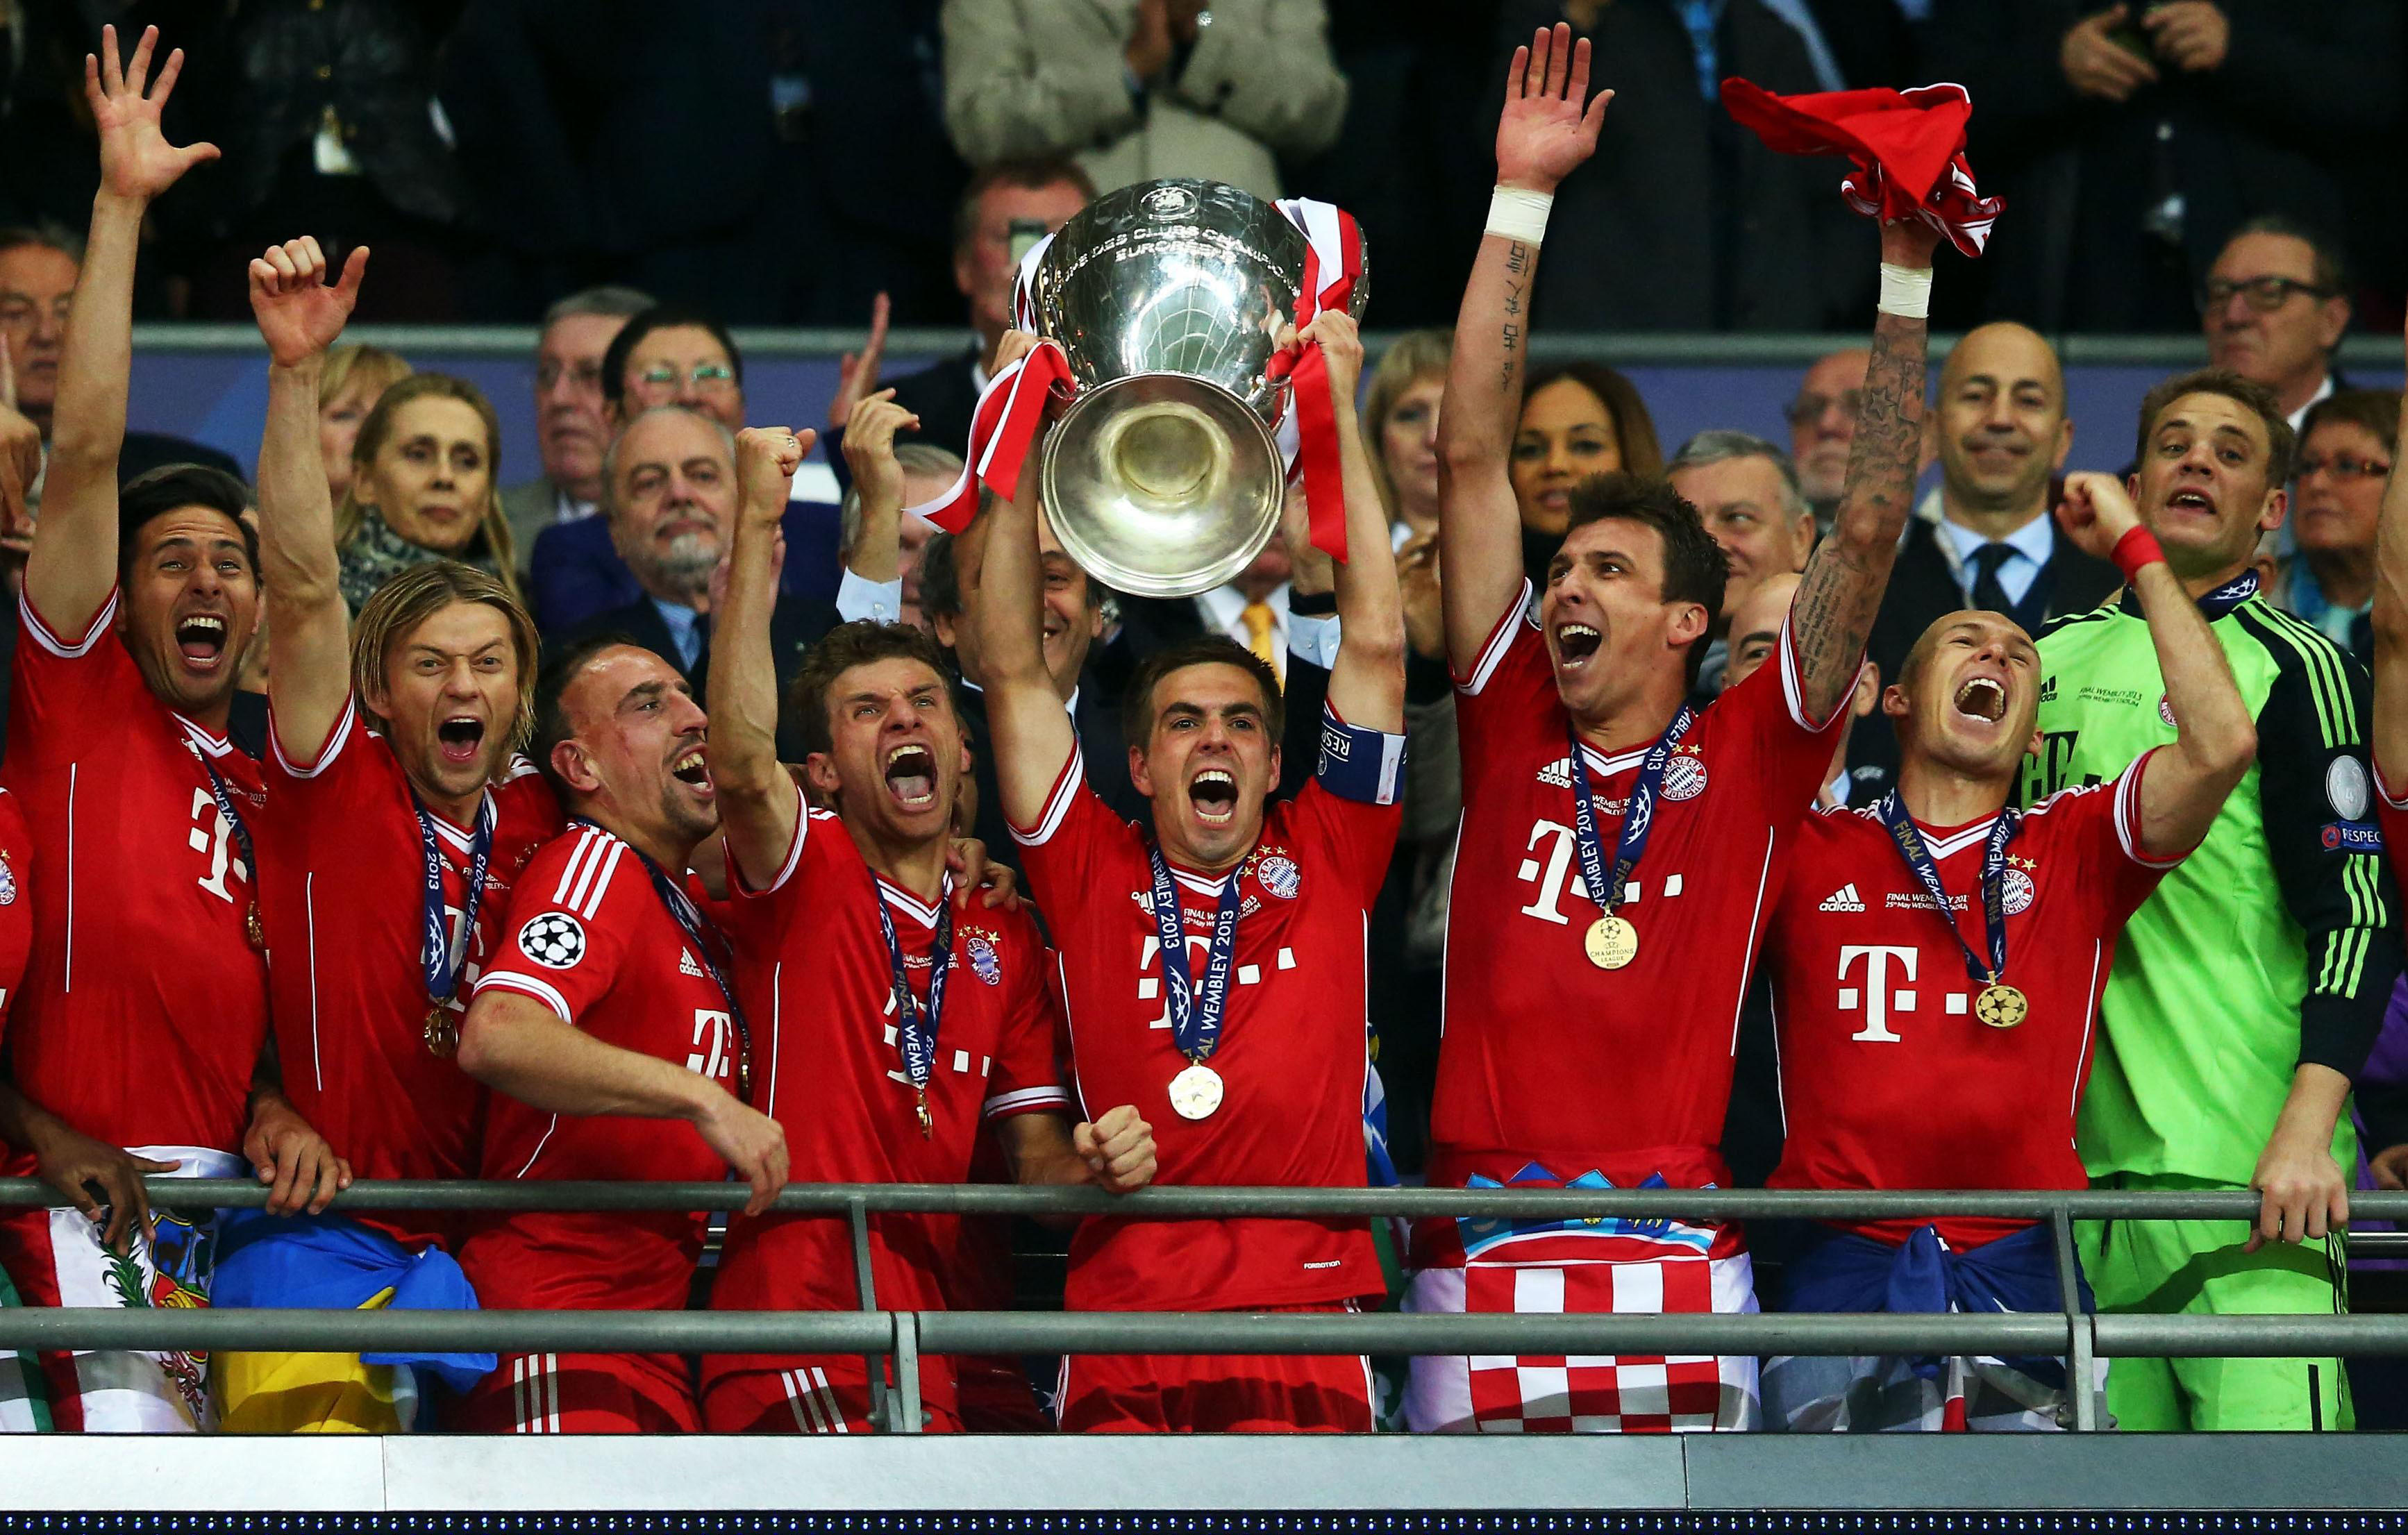 Phillip Lahm lifts the trophy for the Bavarians at Wembley back in 2013, beating Dortmund 2-1 after Full time. They are again favorites for this season.